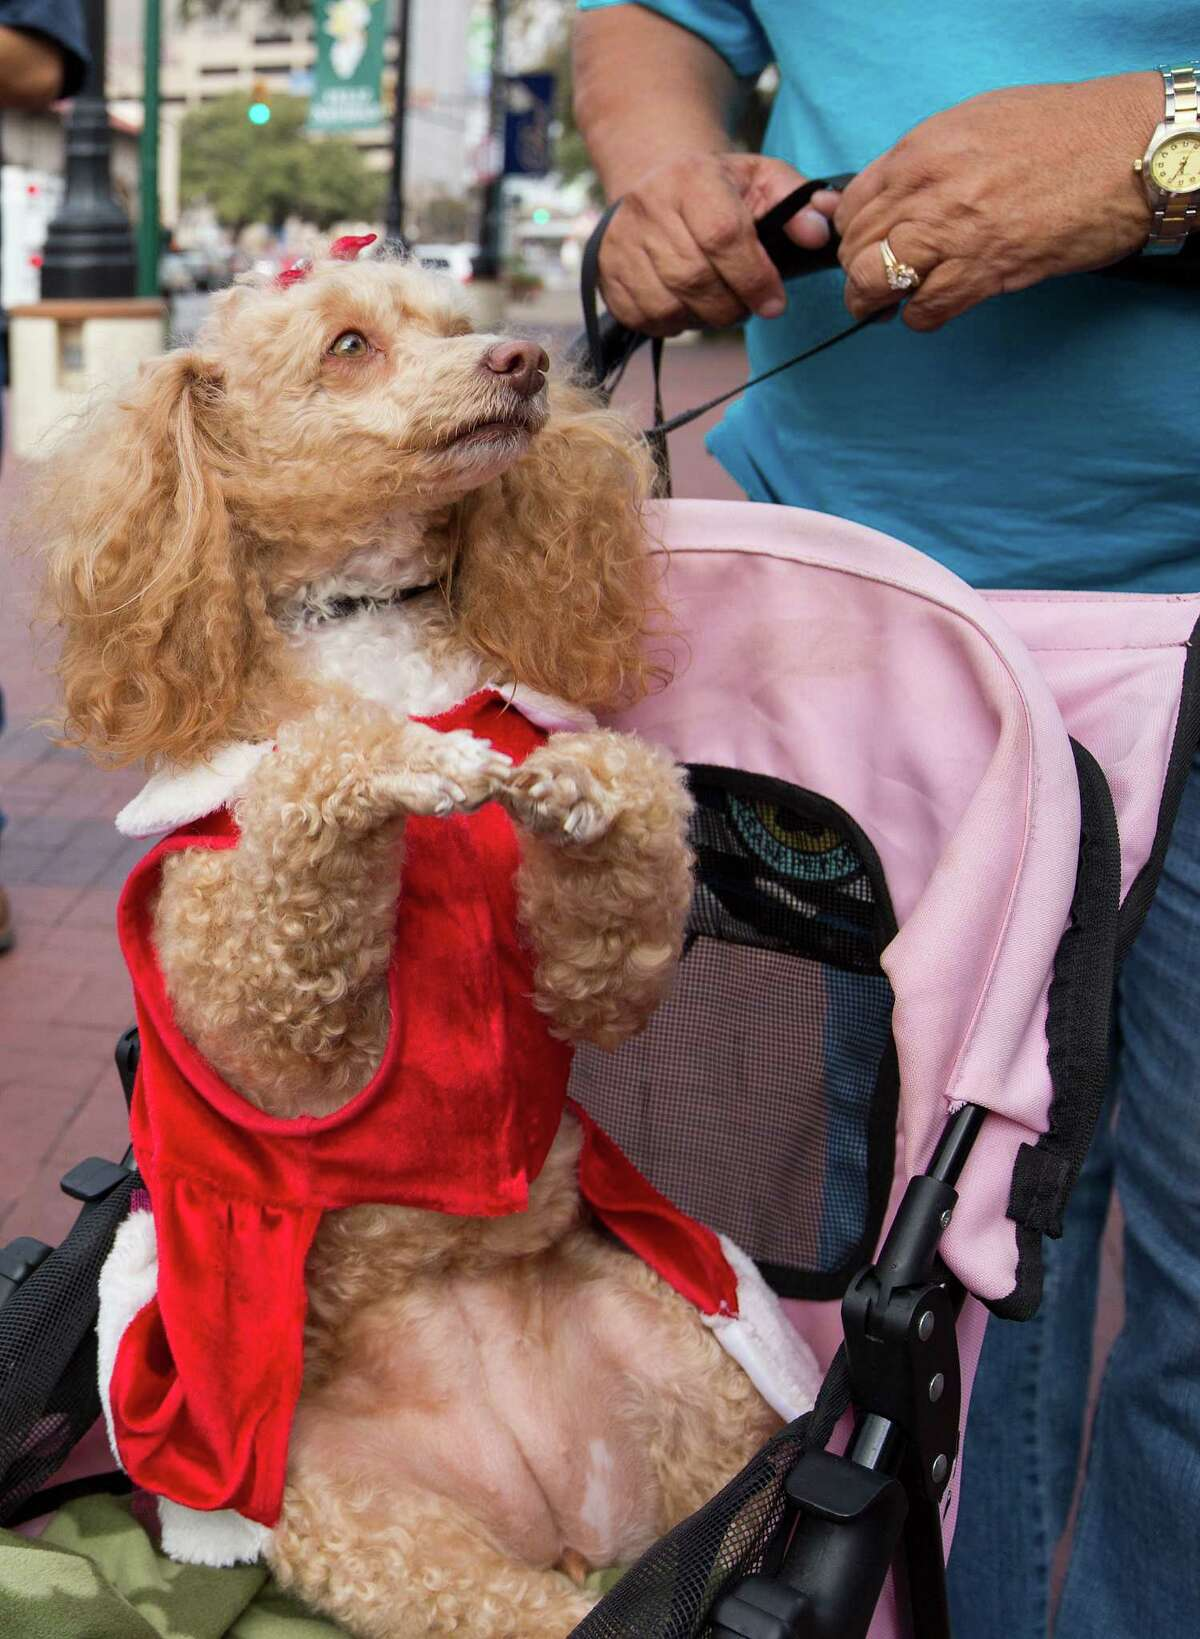 Princess Amelie, a toy poodle owned by Tacho and Maria Carrizales, performs a trick during the 26th annual Blessing of the Animals at Market Square on Saturday, Dec. 8, 2012.